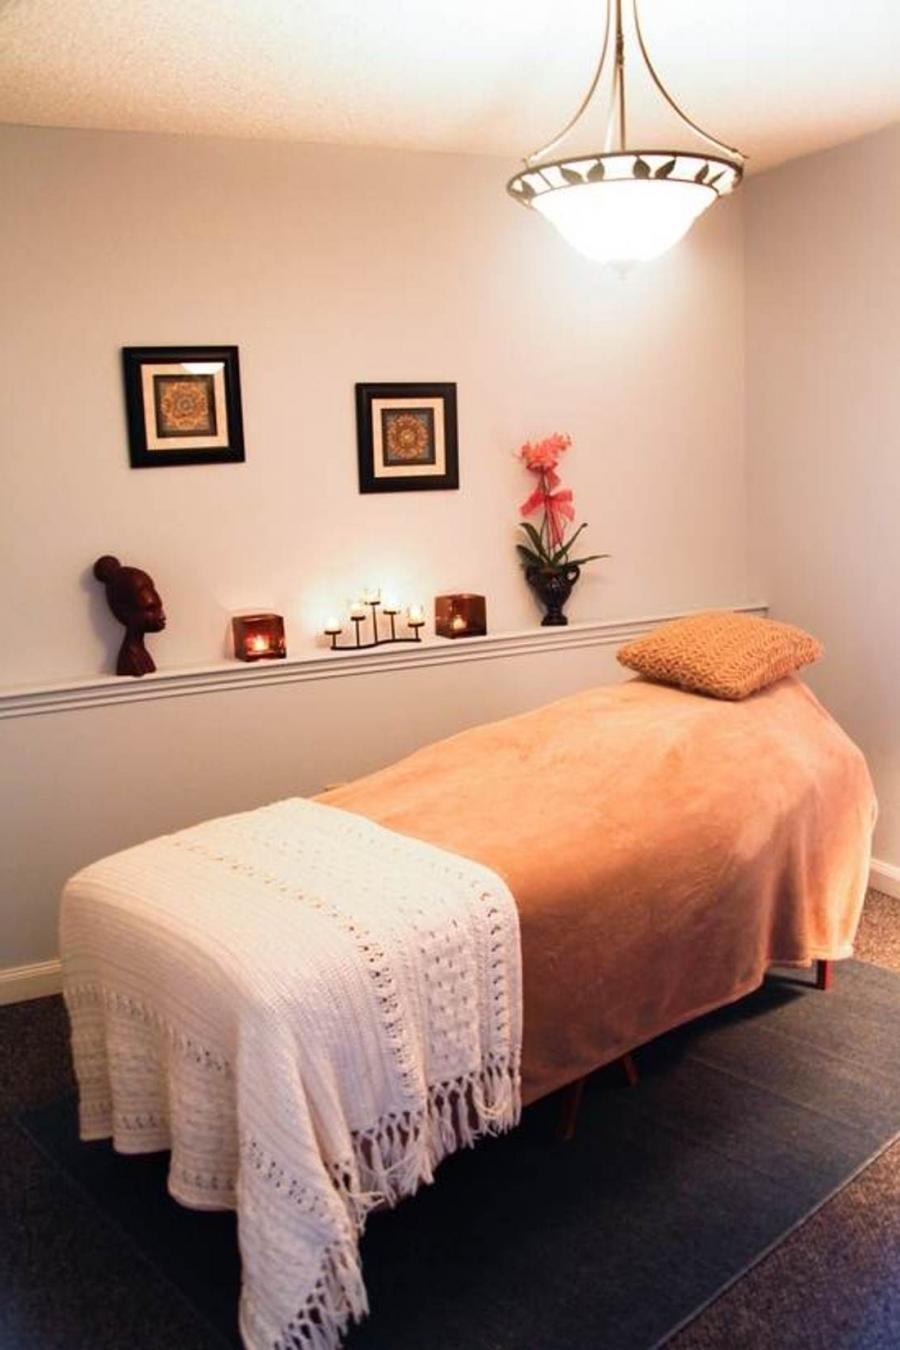 Massage Therapy Room Design Ideas: Massage Room Decorating Ideas Photos